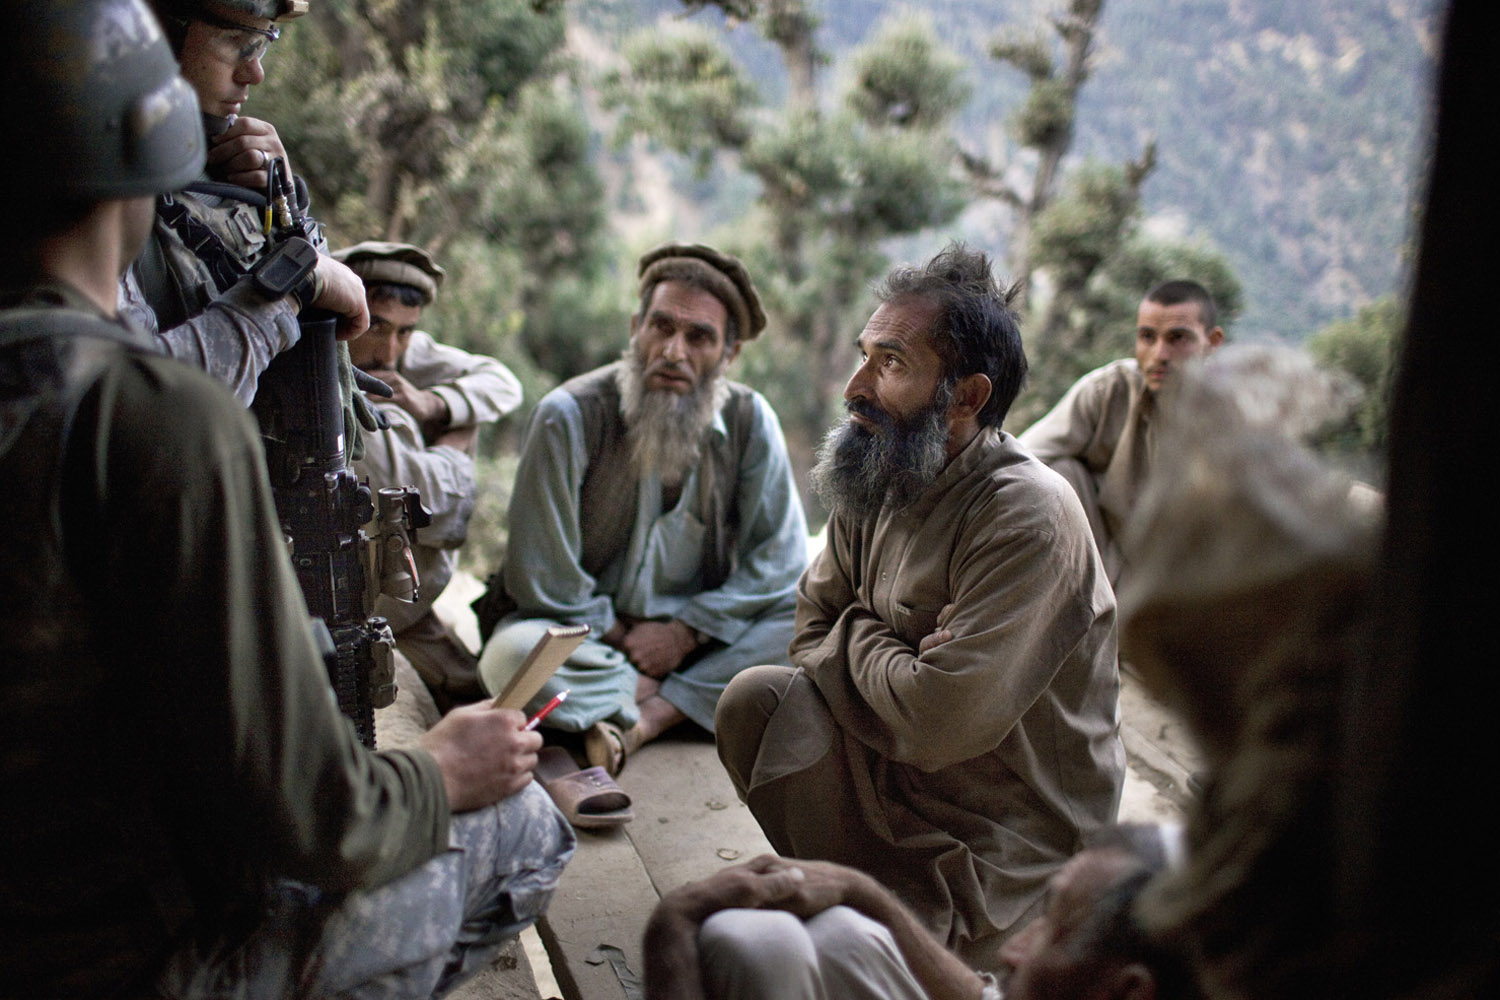 US Army soldiers question members of a family about Taliban presence during a large aerial assault operation along the Pech River in Kunar province's Shuryak Valley. September, 2009